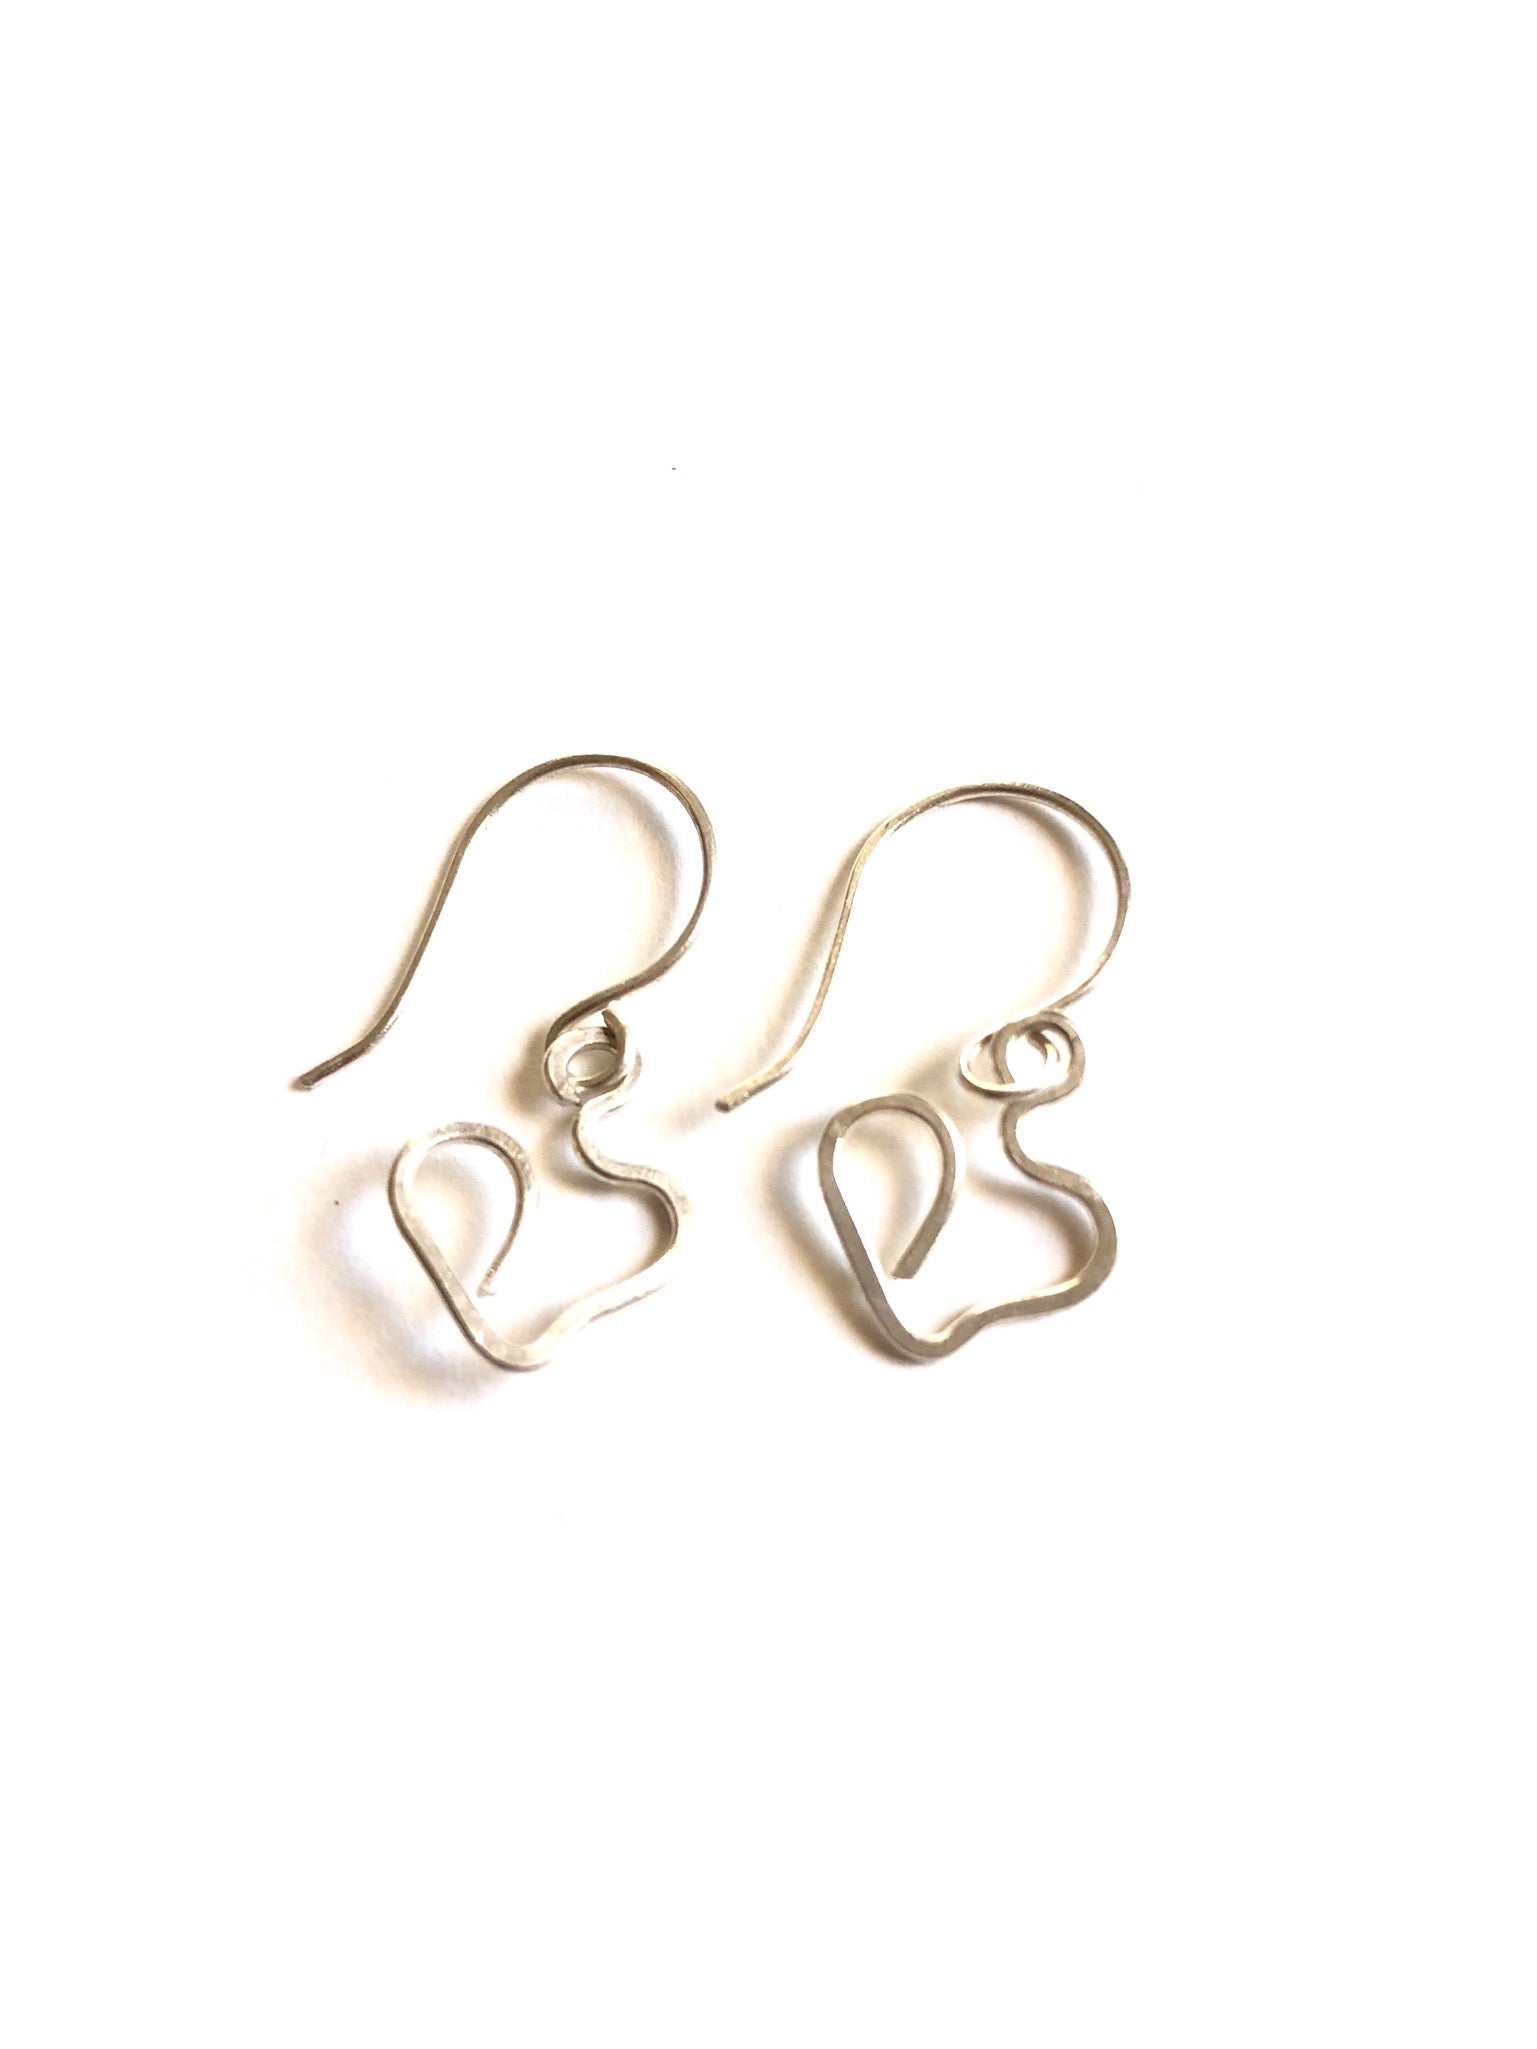 Brass or Silver Heart Earrings